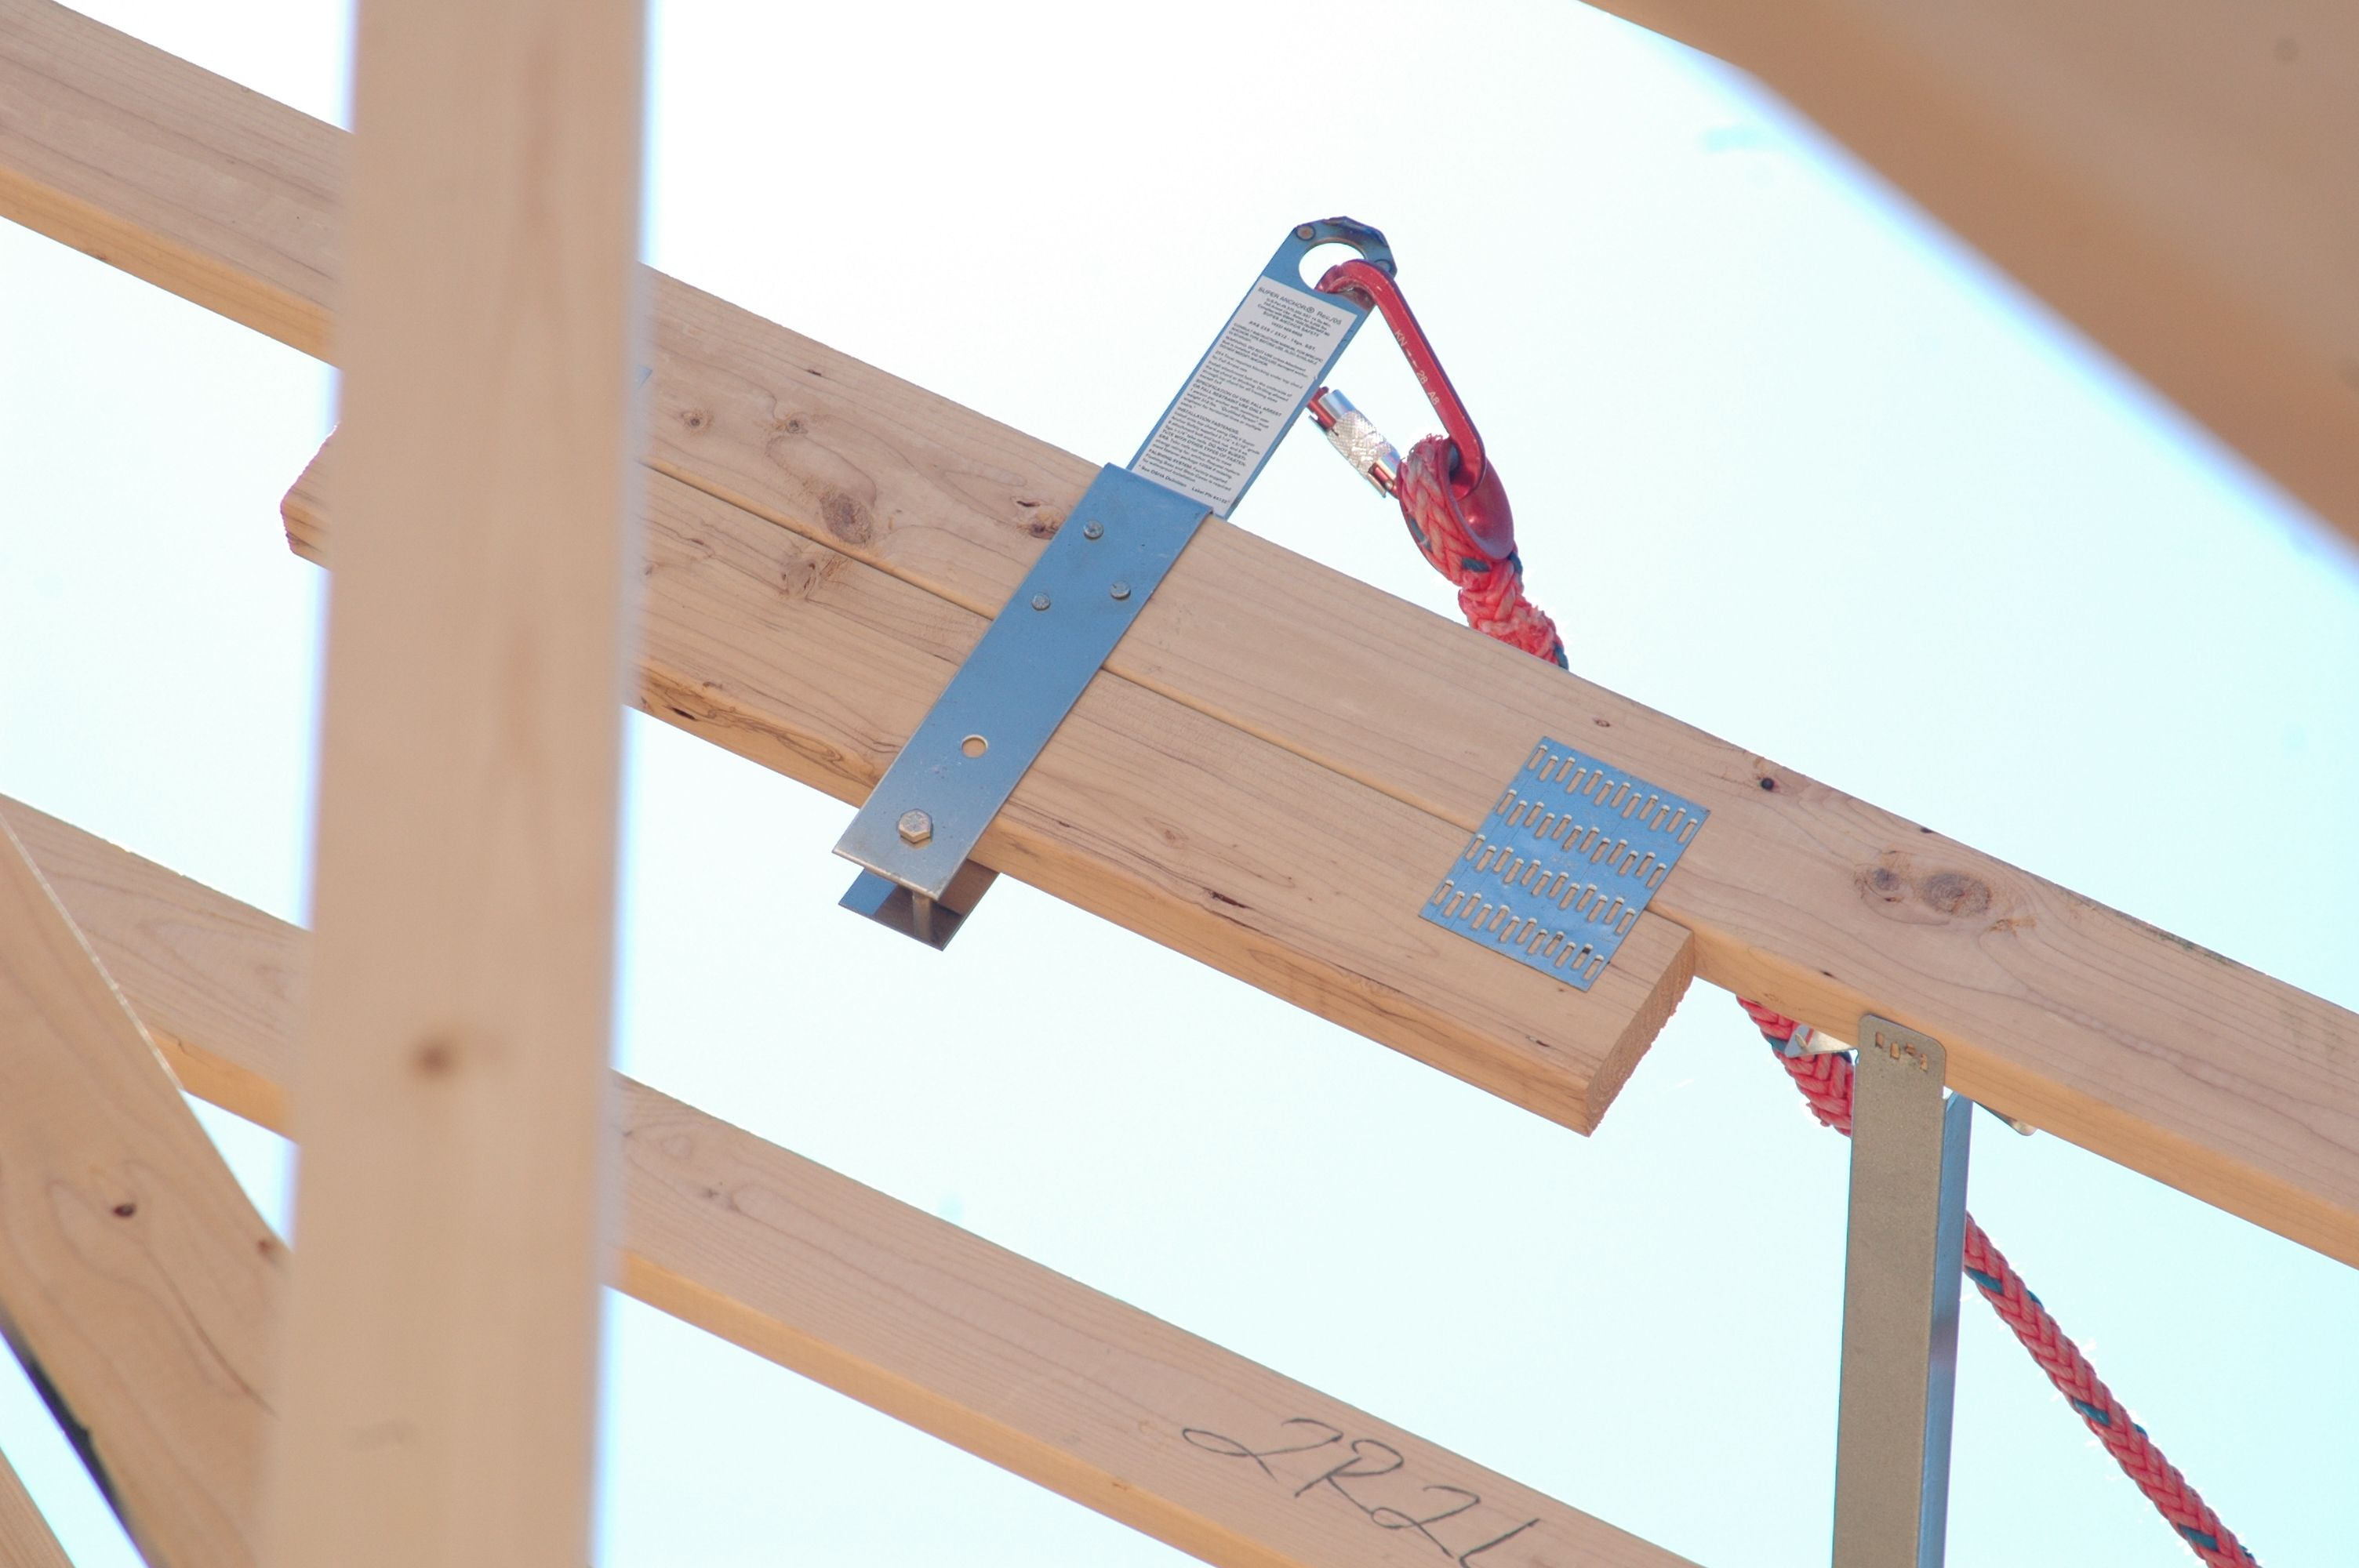 Ars 2x8 Permanent Roof Safety Anchor Installed During The Framing Of A Home Anchor Design Installation Home